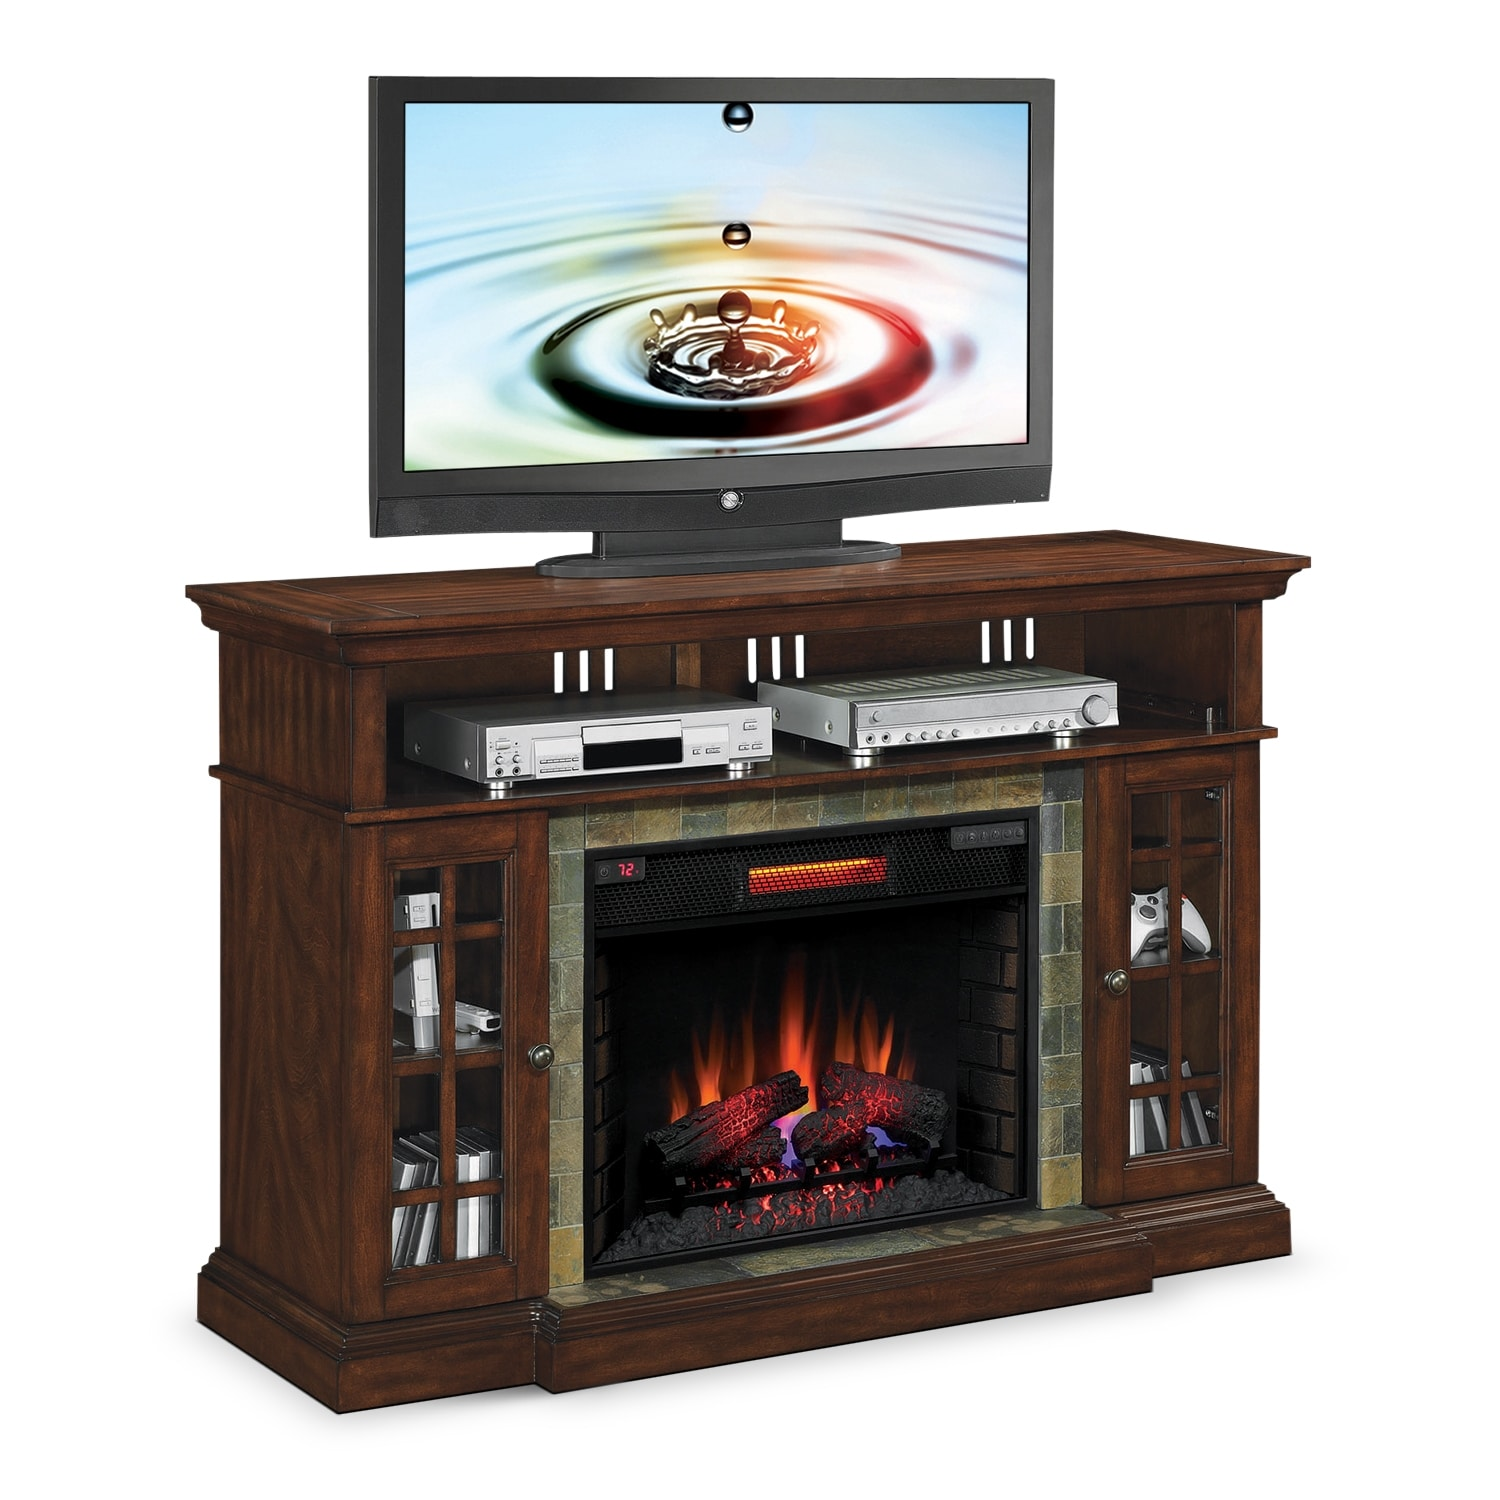 Lakeland Entertainment Wall Units Fireplace Tv Stand Value City Wall Unit Entertainment Center